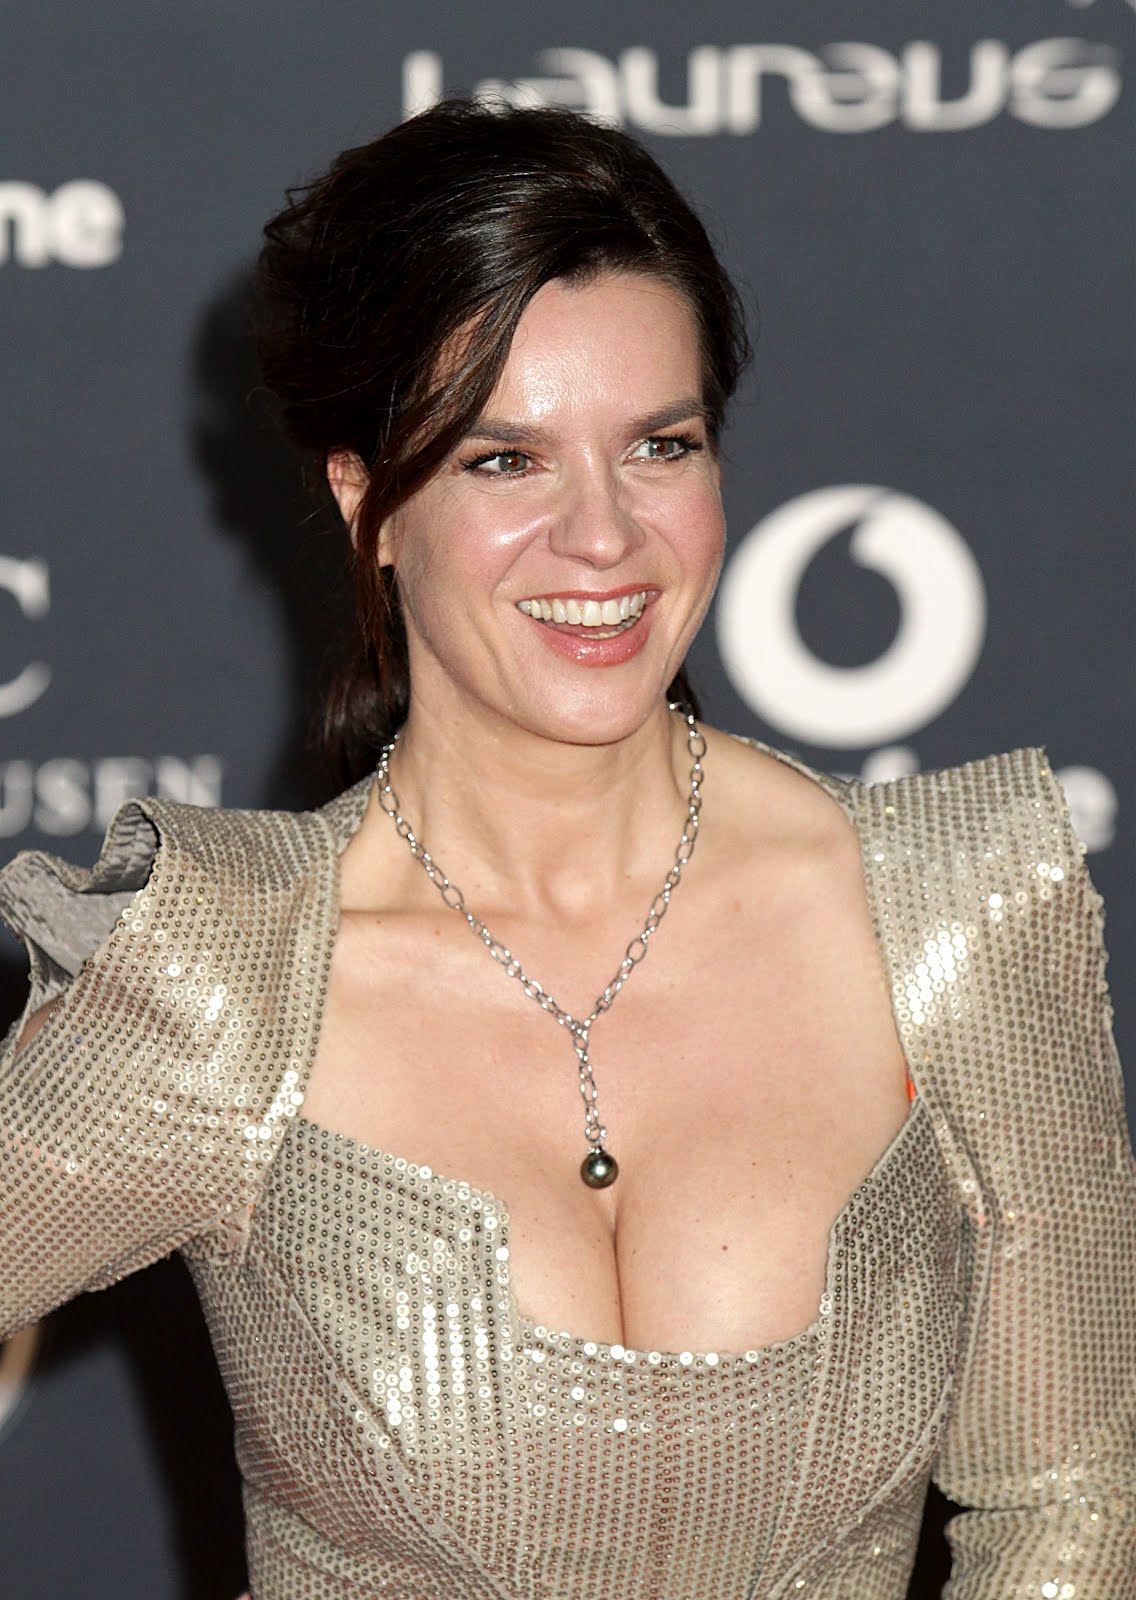 katarina witt gold medalkatarina witt deutsche, katarina witt carmen, katarina witt stiftung, katarina witt gold medal, katarina witt skating, katarina witt partner, katarina witt personal, katarina witt lebenslauf, katarina witt interview, katarina witt 1988 costume, katarina witt eltern, katarina witt wiki deutsch, katarina witt biografie, katarina witt wikipedia deutsch, katarina witt heute, katarina witt instagram, katarina witt biography, katarina witt husband, katarina witt wohnung, katarina witt carmen bizet